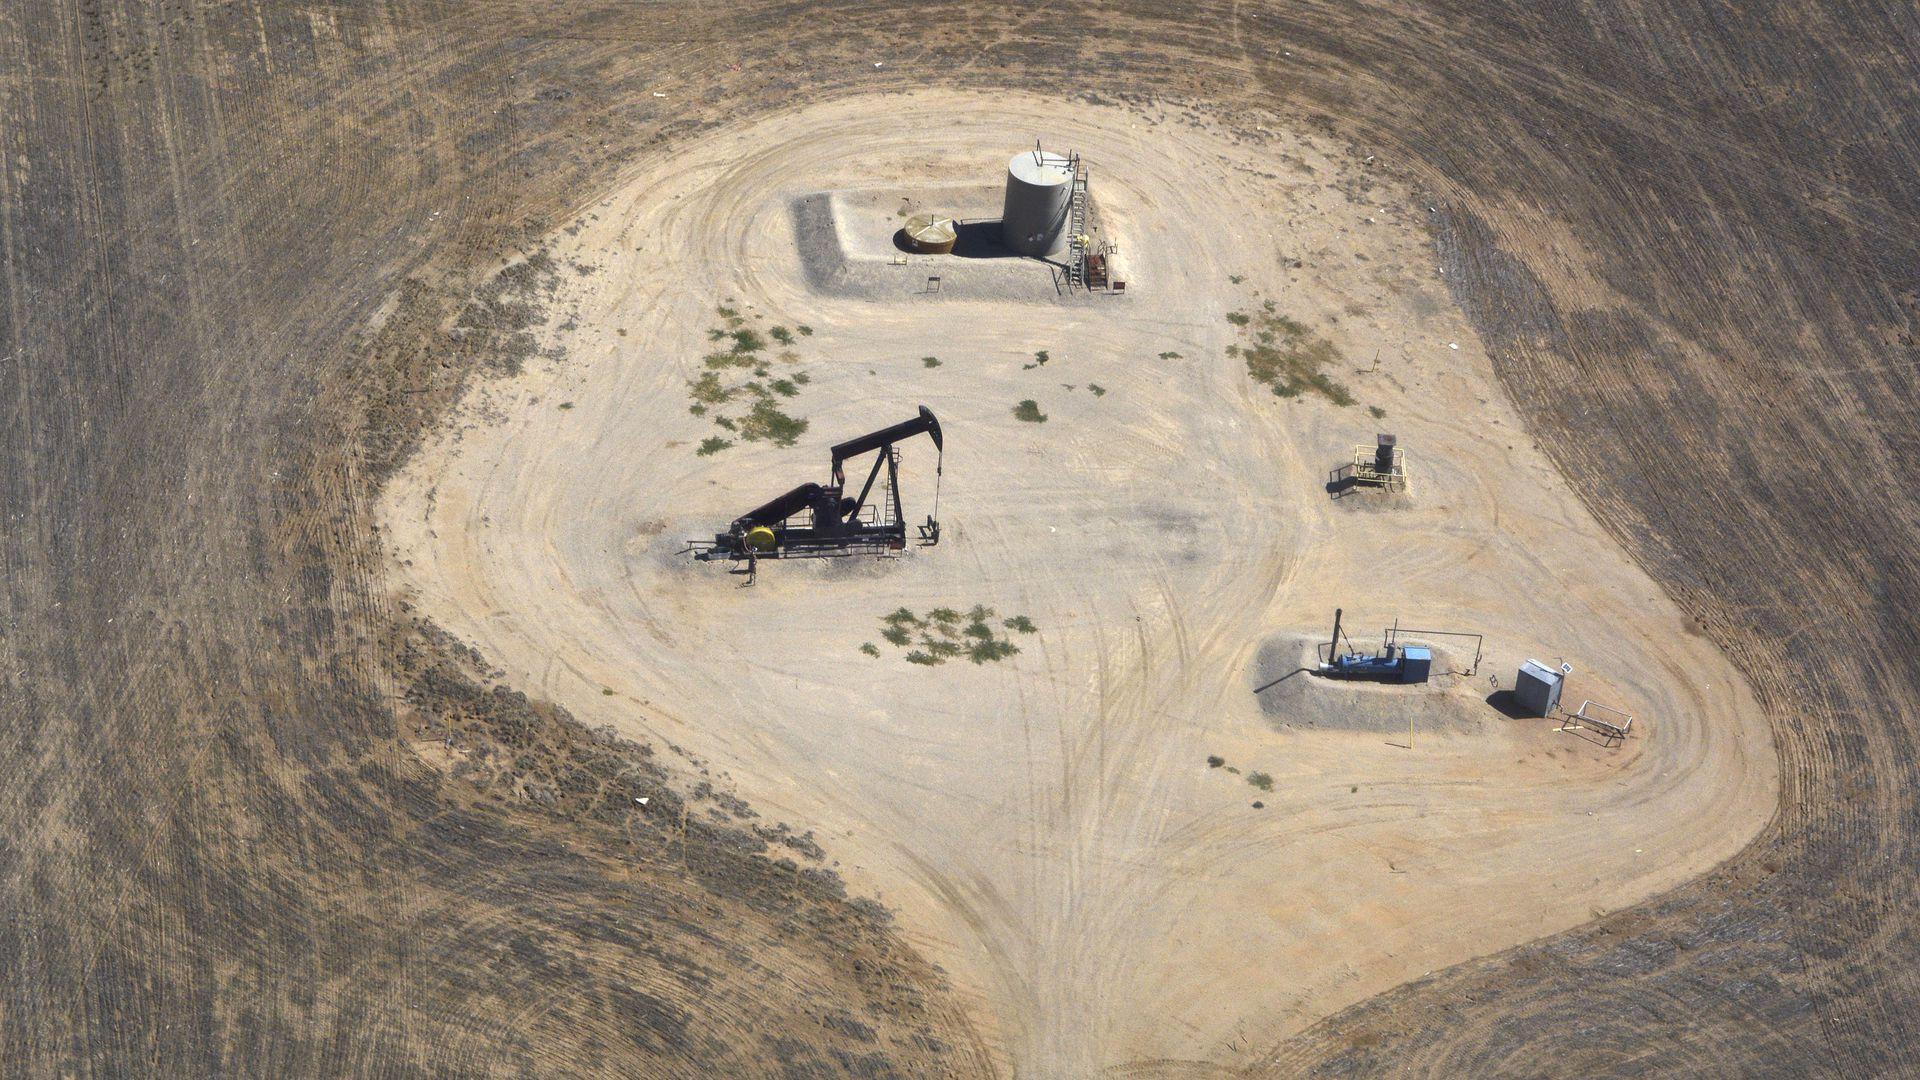 Oil and gas wells on Denver International Airport property as seen from a passenger plane landing at the airport in Denver, Colorado.